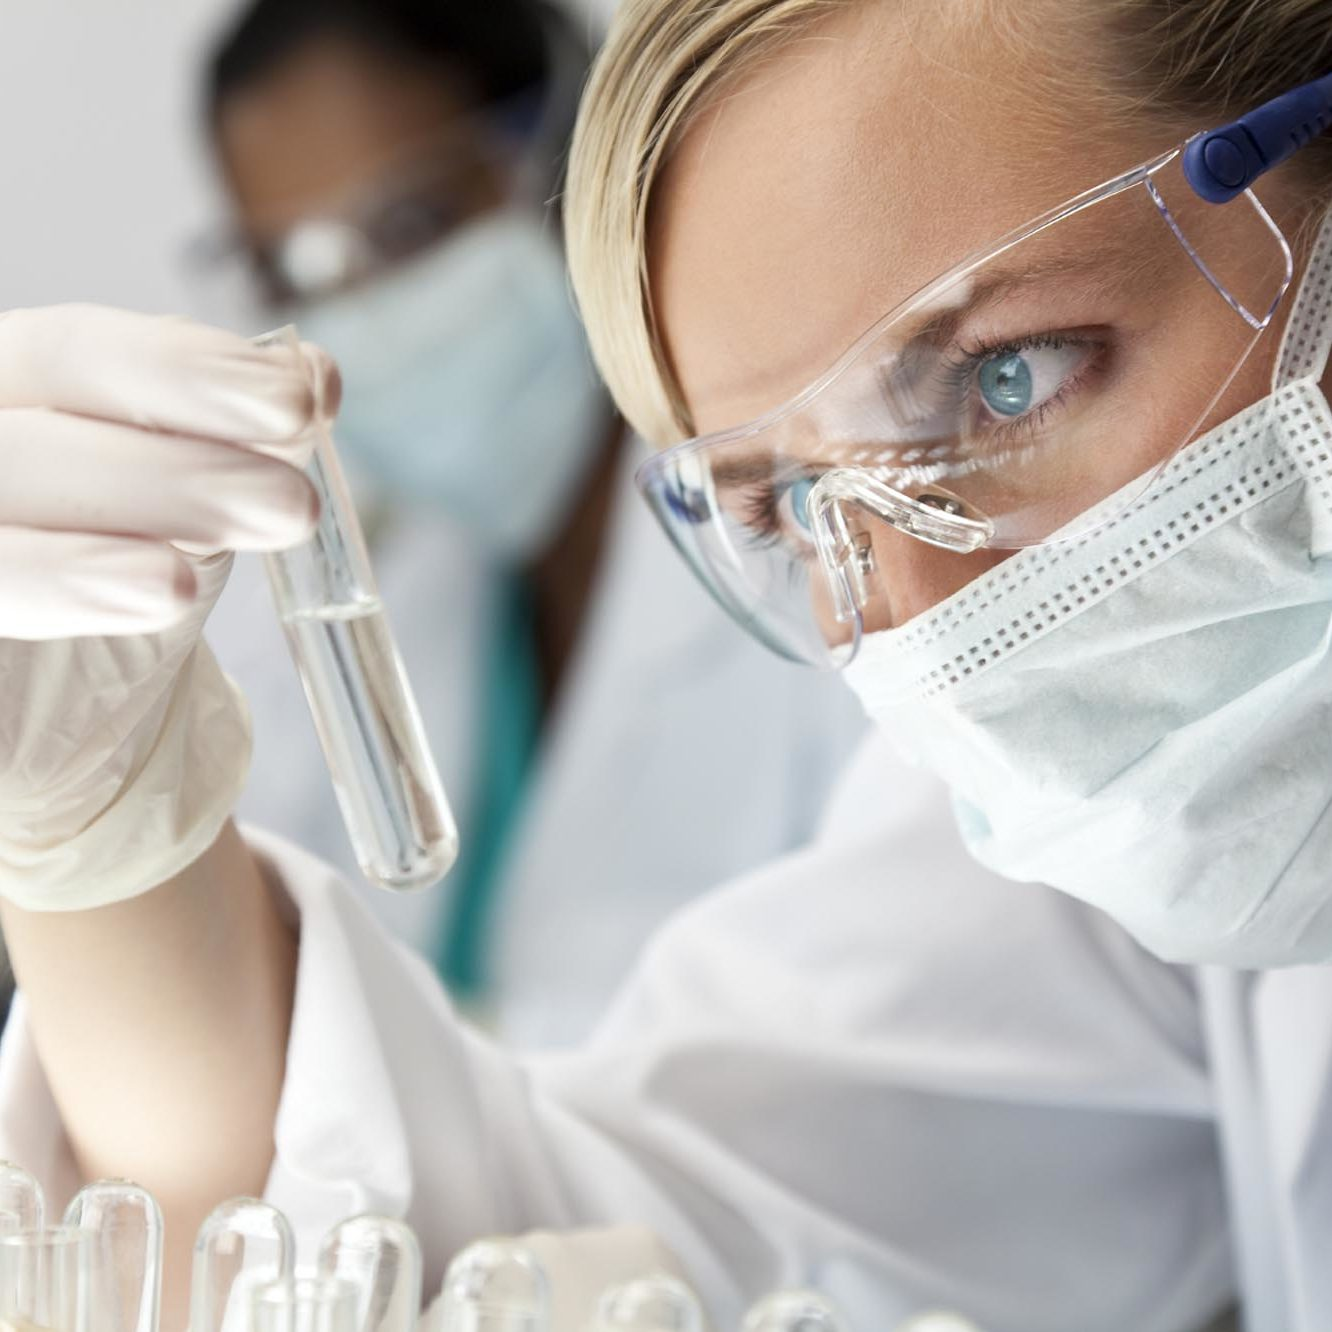 A blond medical or scientific researcher or doctor using looking at a clear solution in a laboratory with her Asian female colleague out of focus behind her.